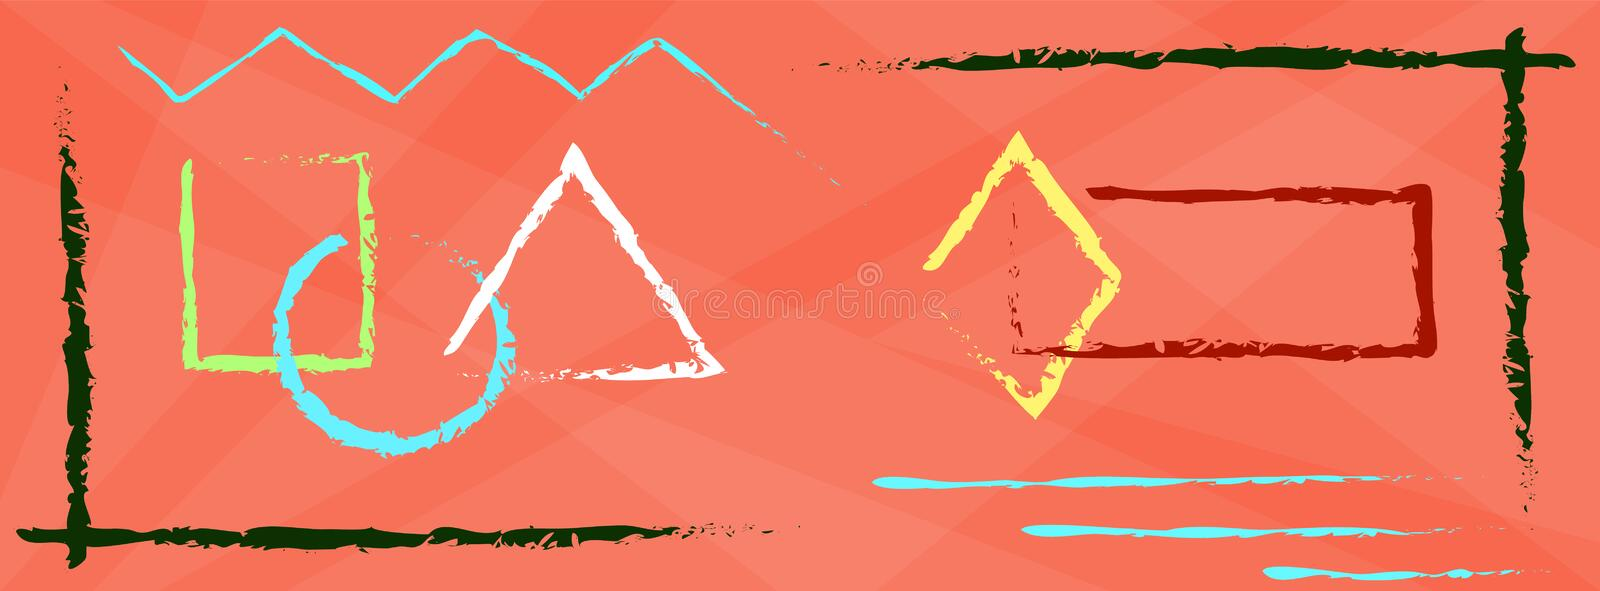 Creative art header with different shapes and textures. Collage. Vector stock illustration